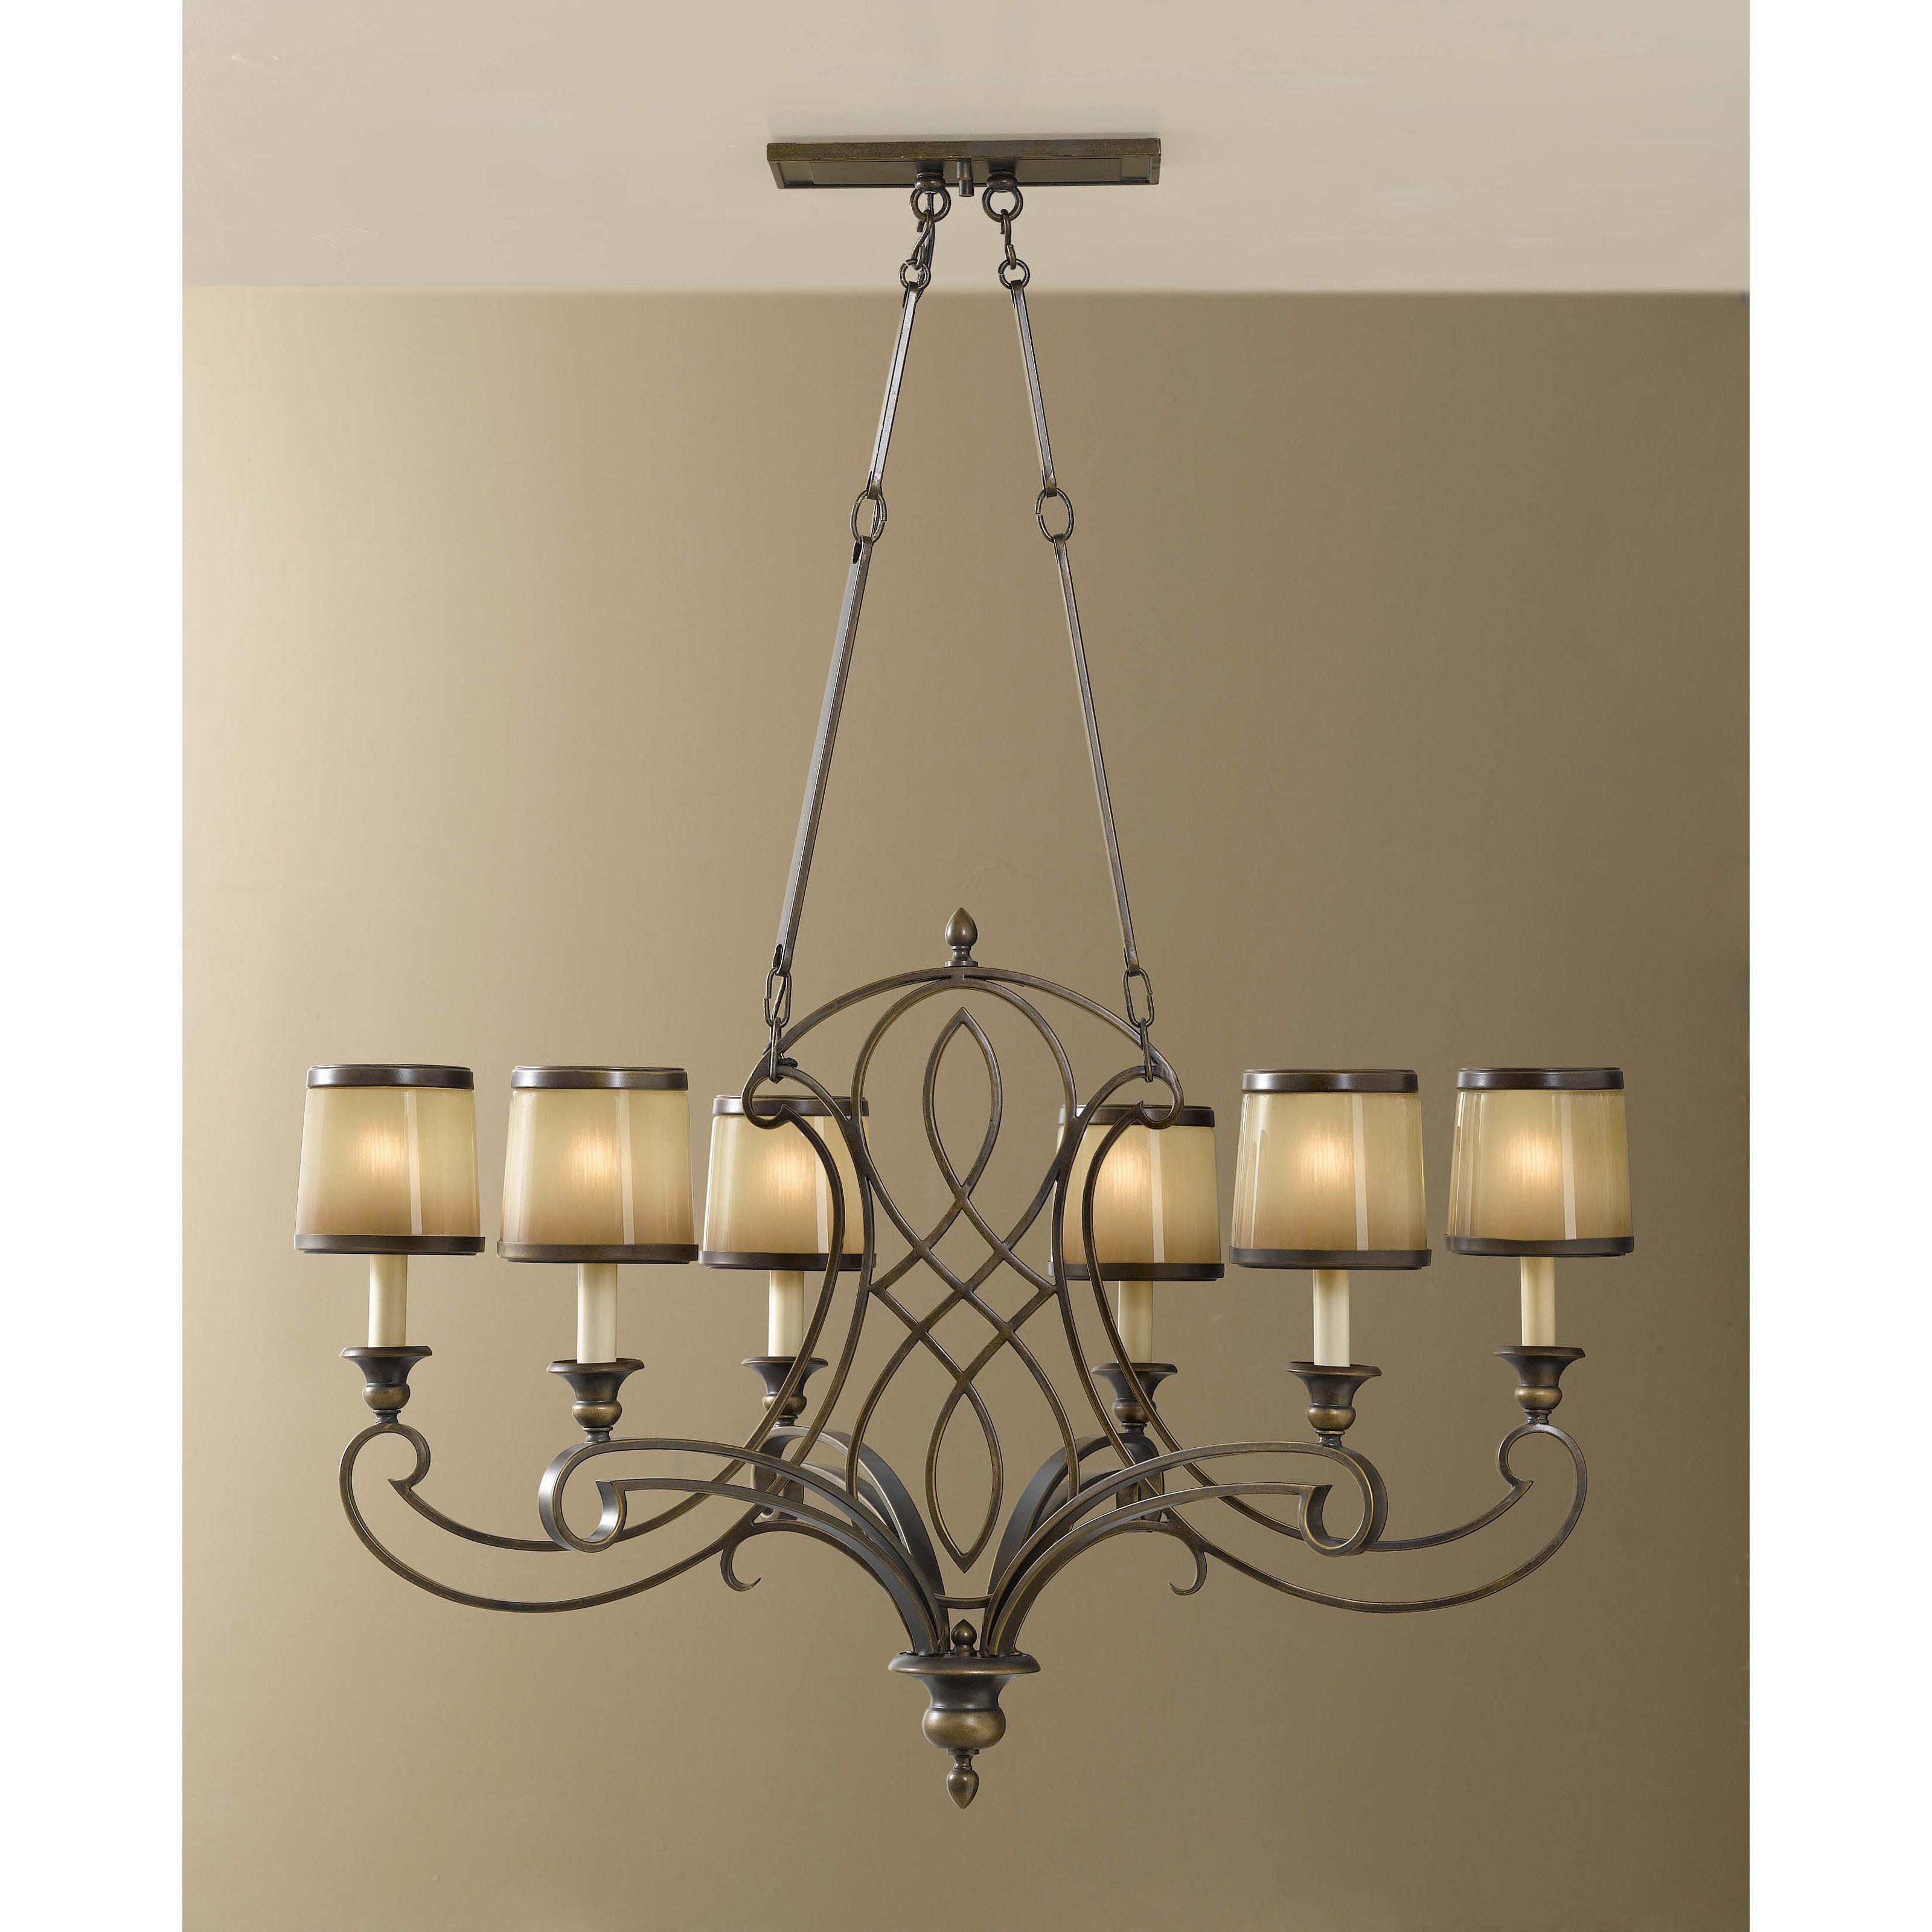 Feiss Justine F2530 / 6ASTB Chandelier - Astral Bronze | from ...